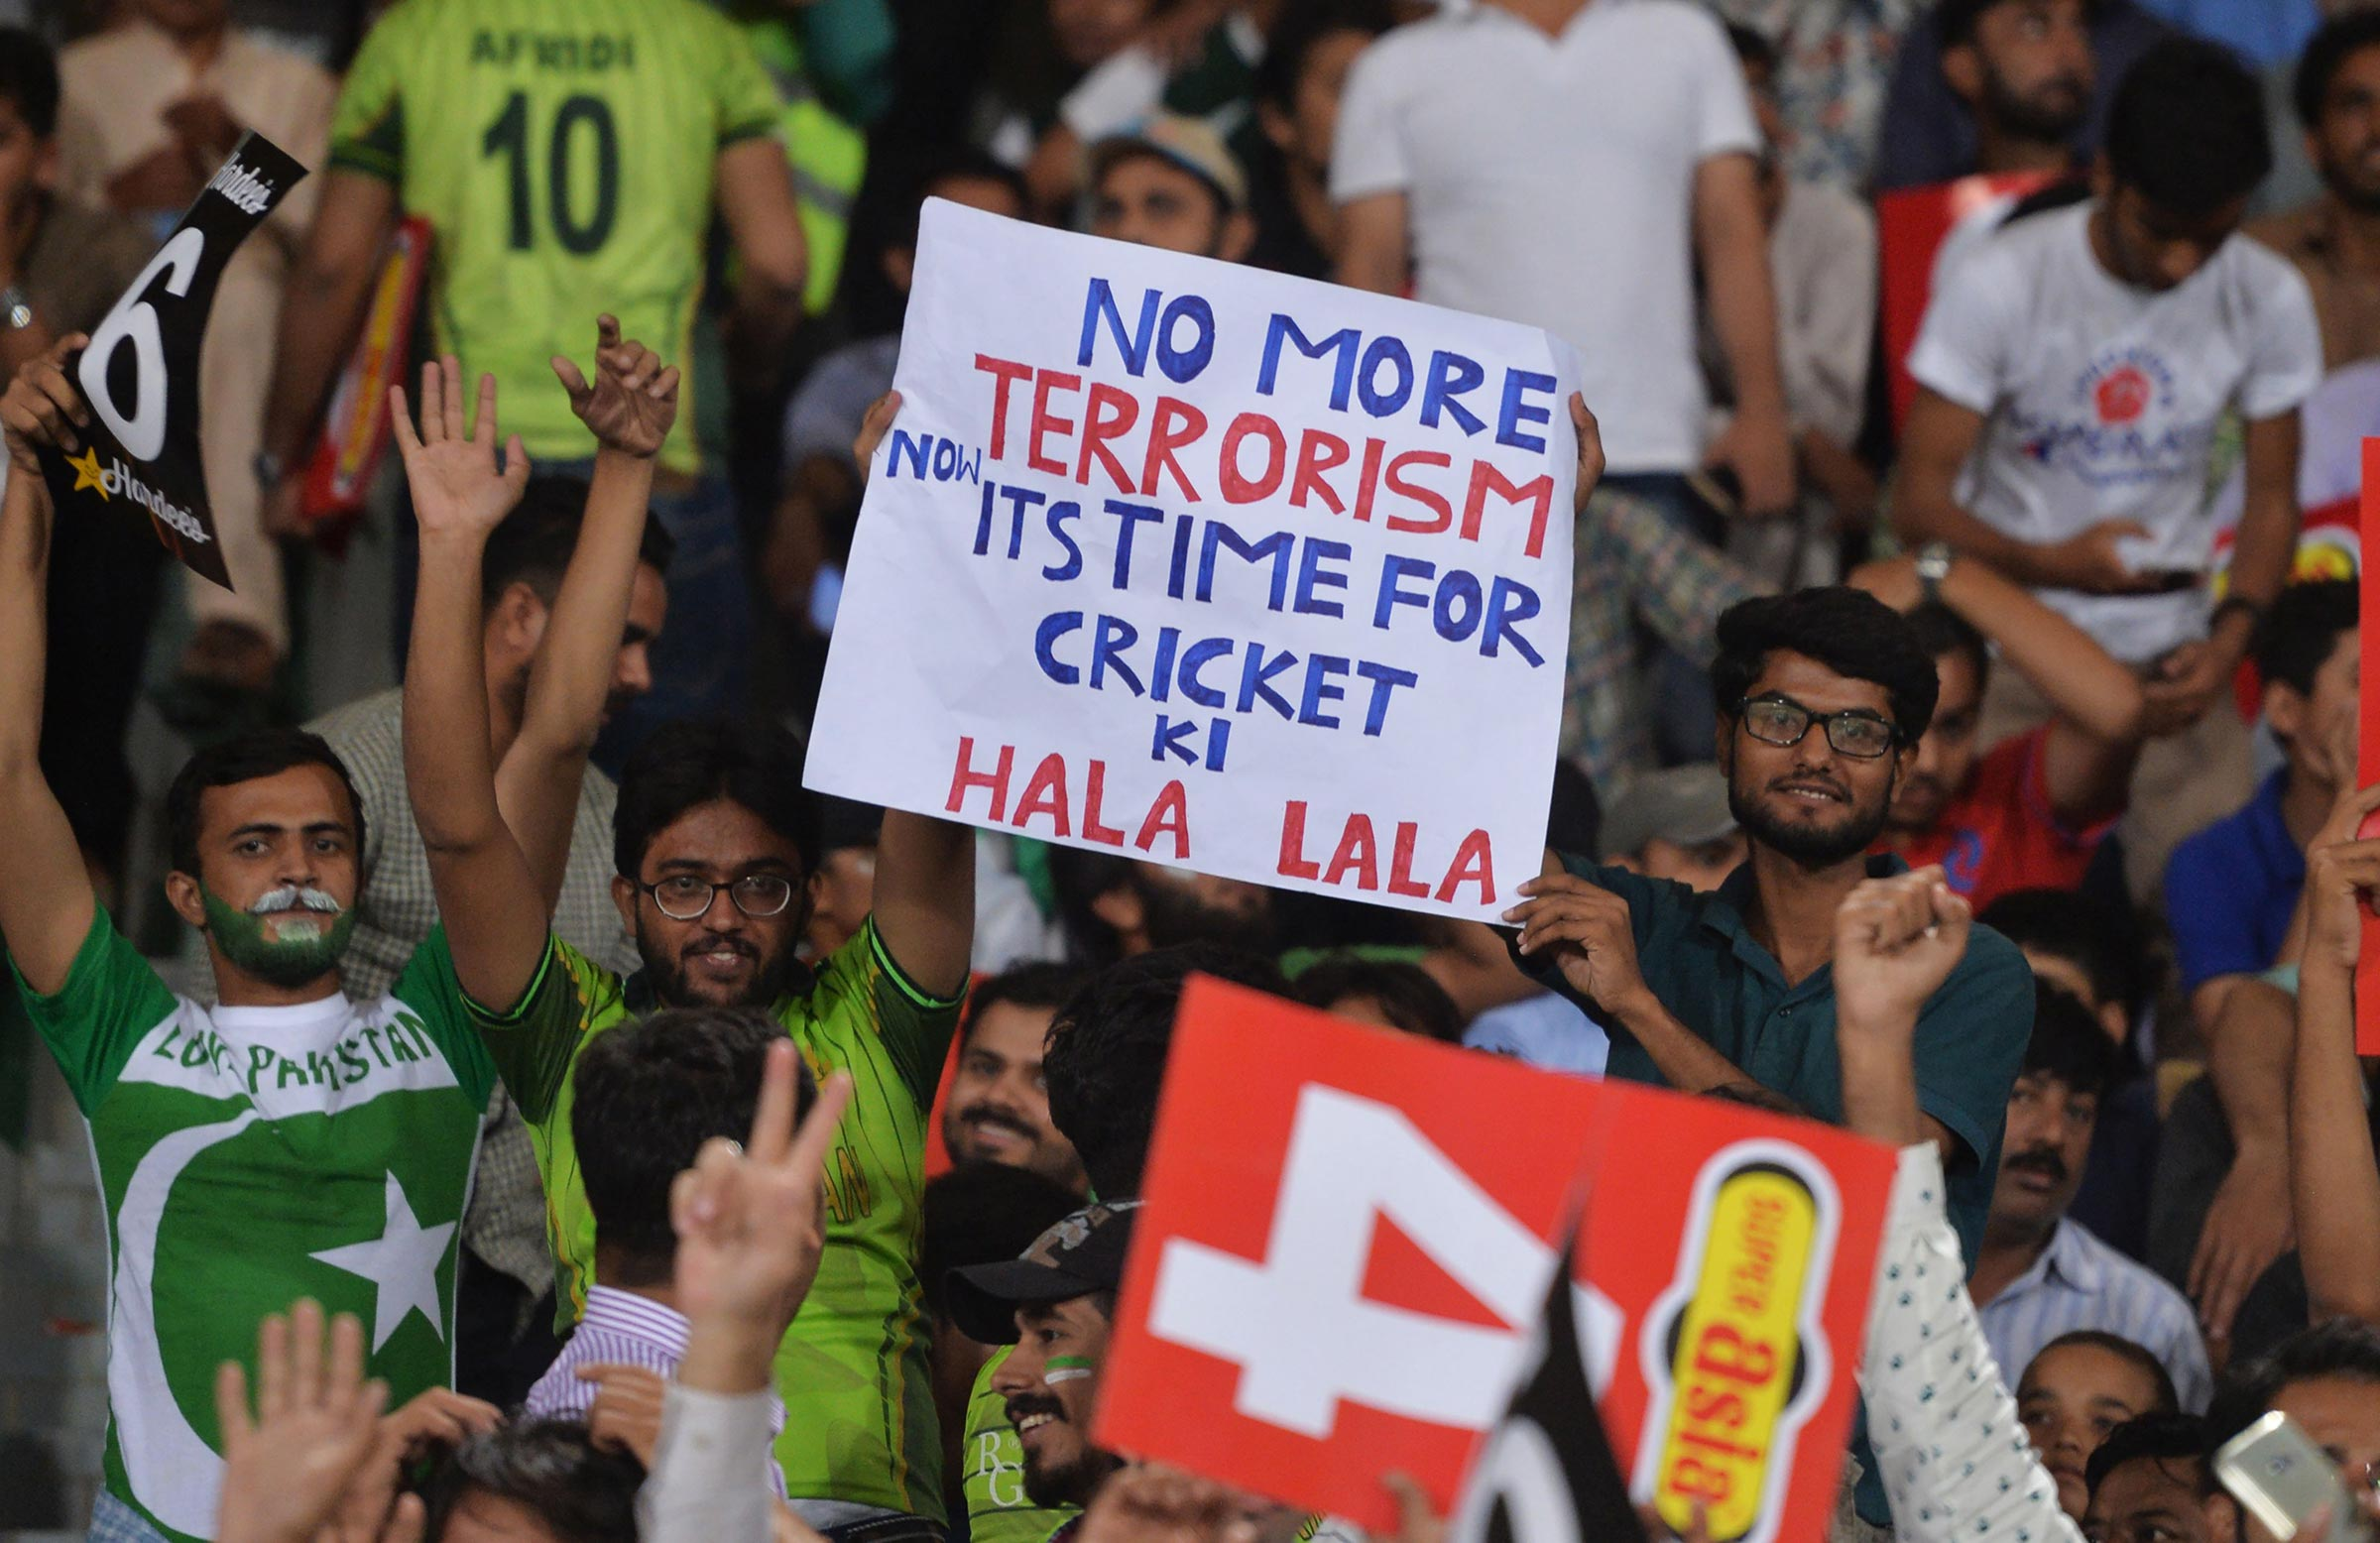 Cricket fans in Pakistan have been starved of top-level cricket // Getty